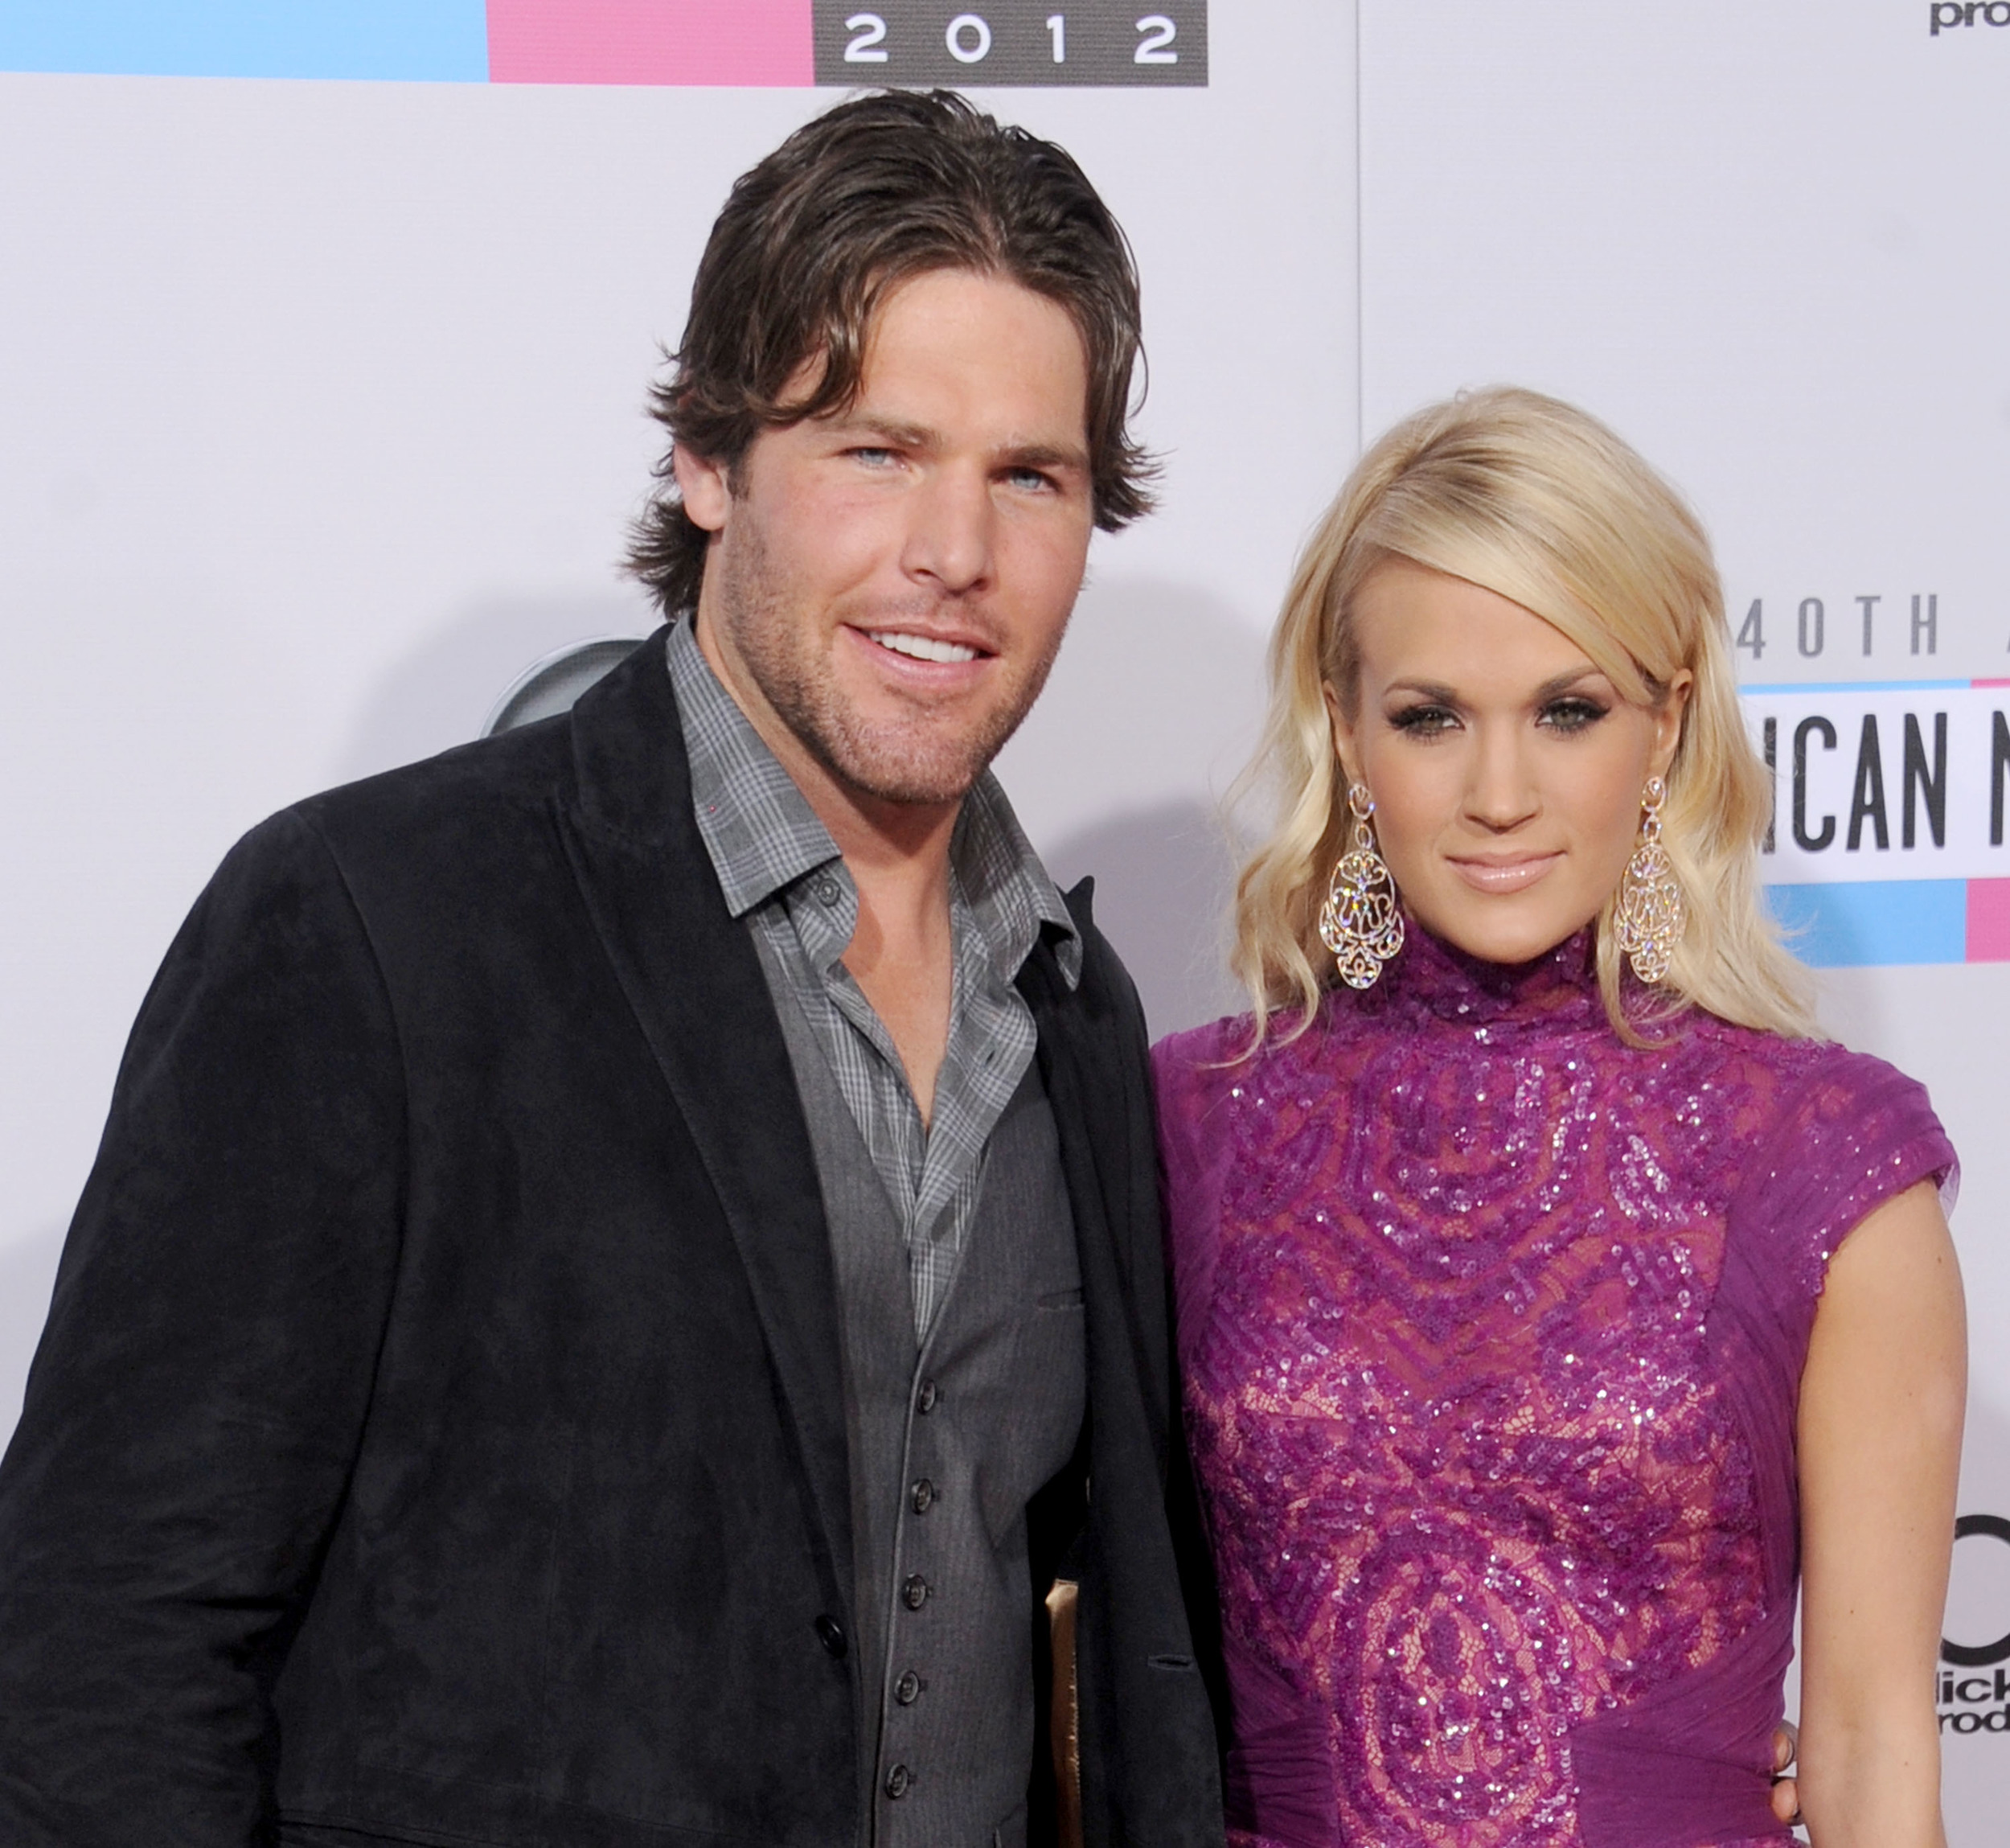 Carrie Underwood: Singing was 'physically impossible' after facial injury